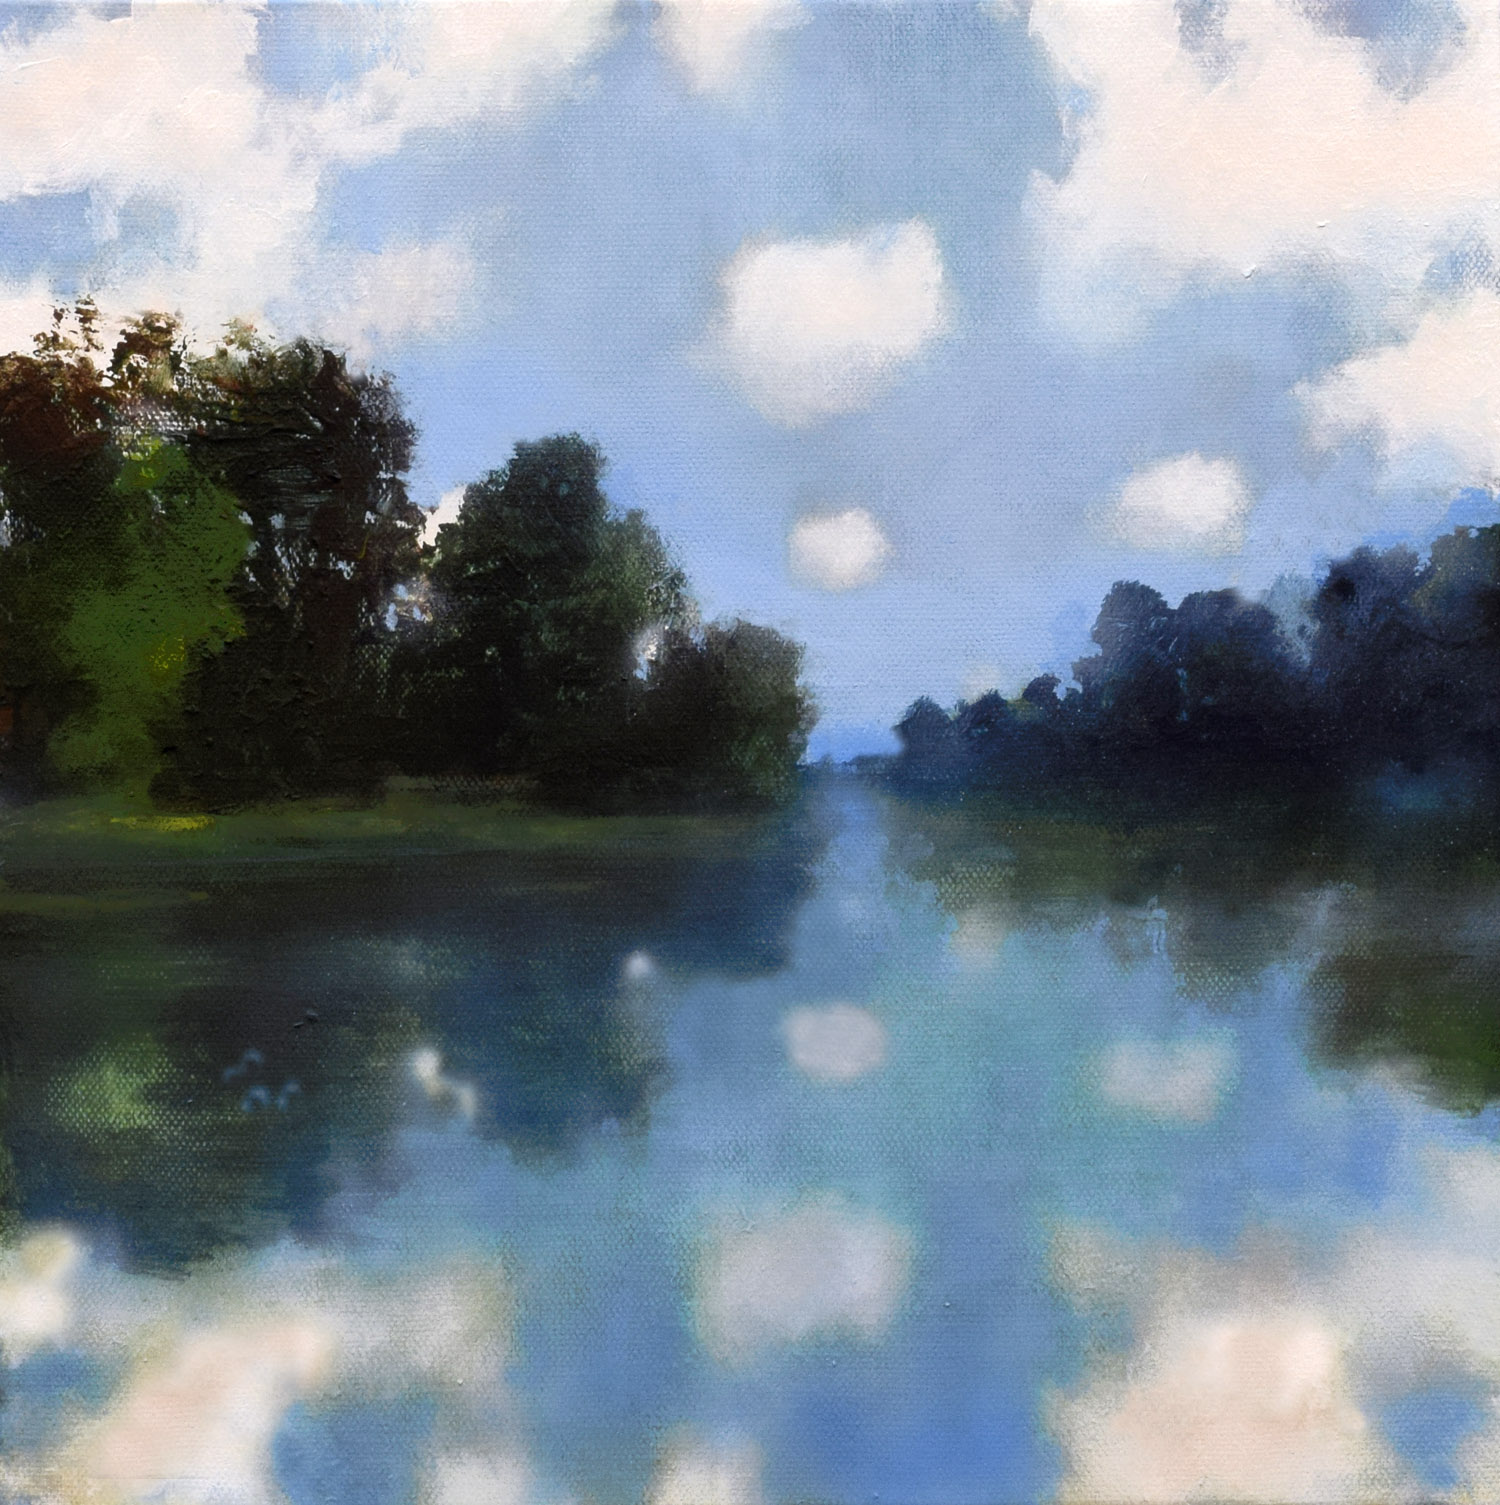 Clouds in the Ouvèze River